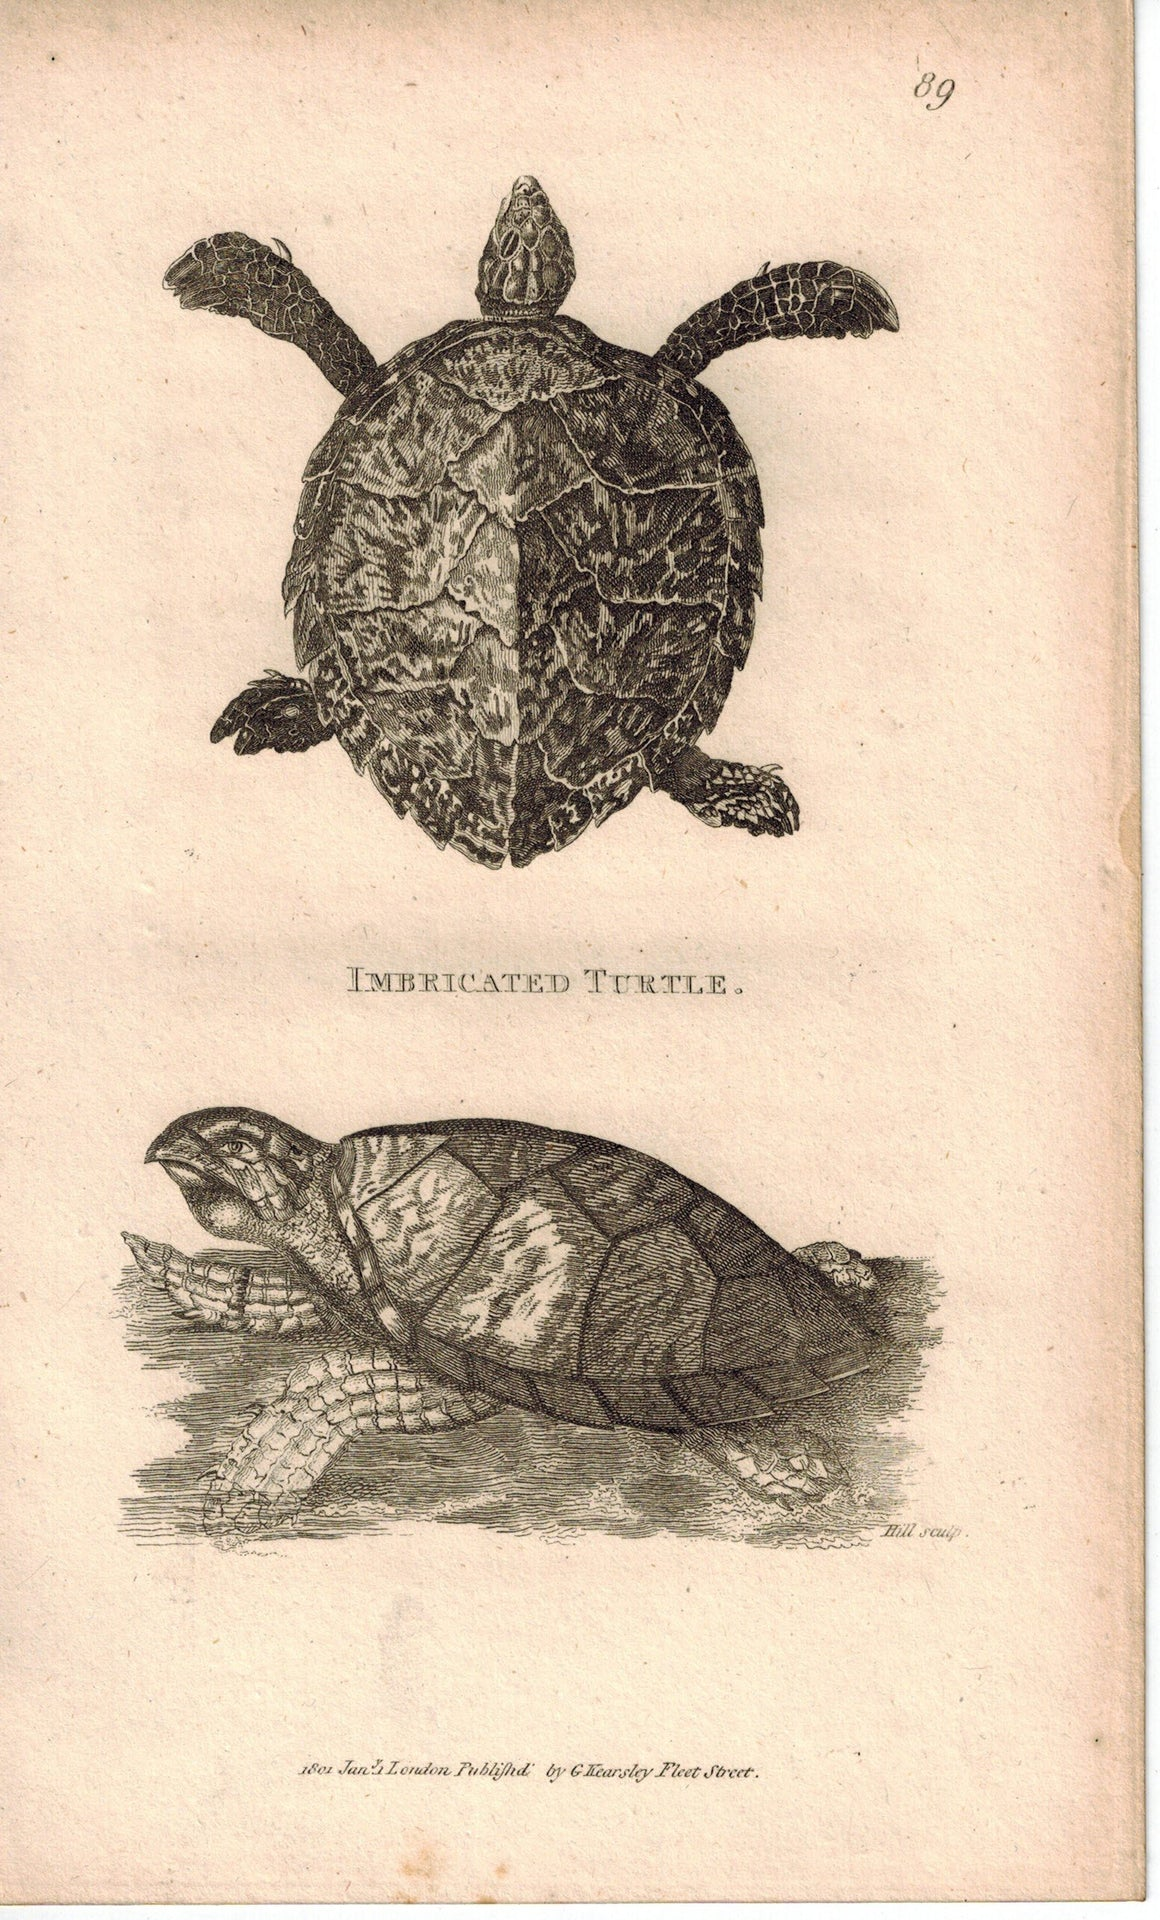 Imbricated Turtle 1809 Original Antique Engraving Print by Shaw & Griffith